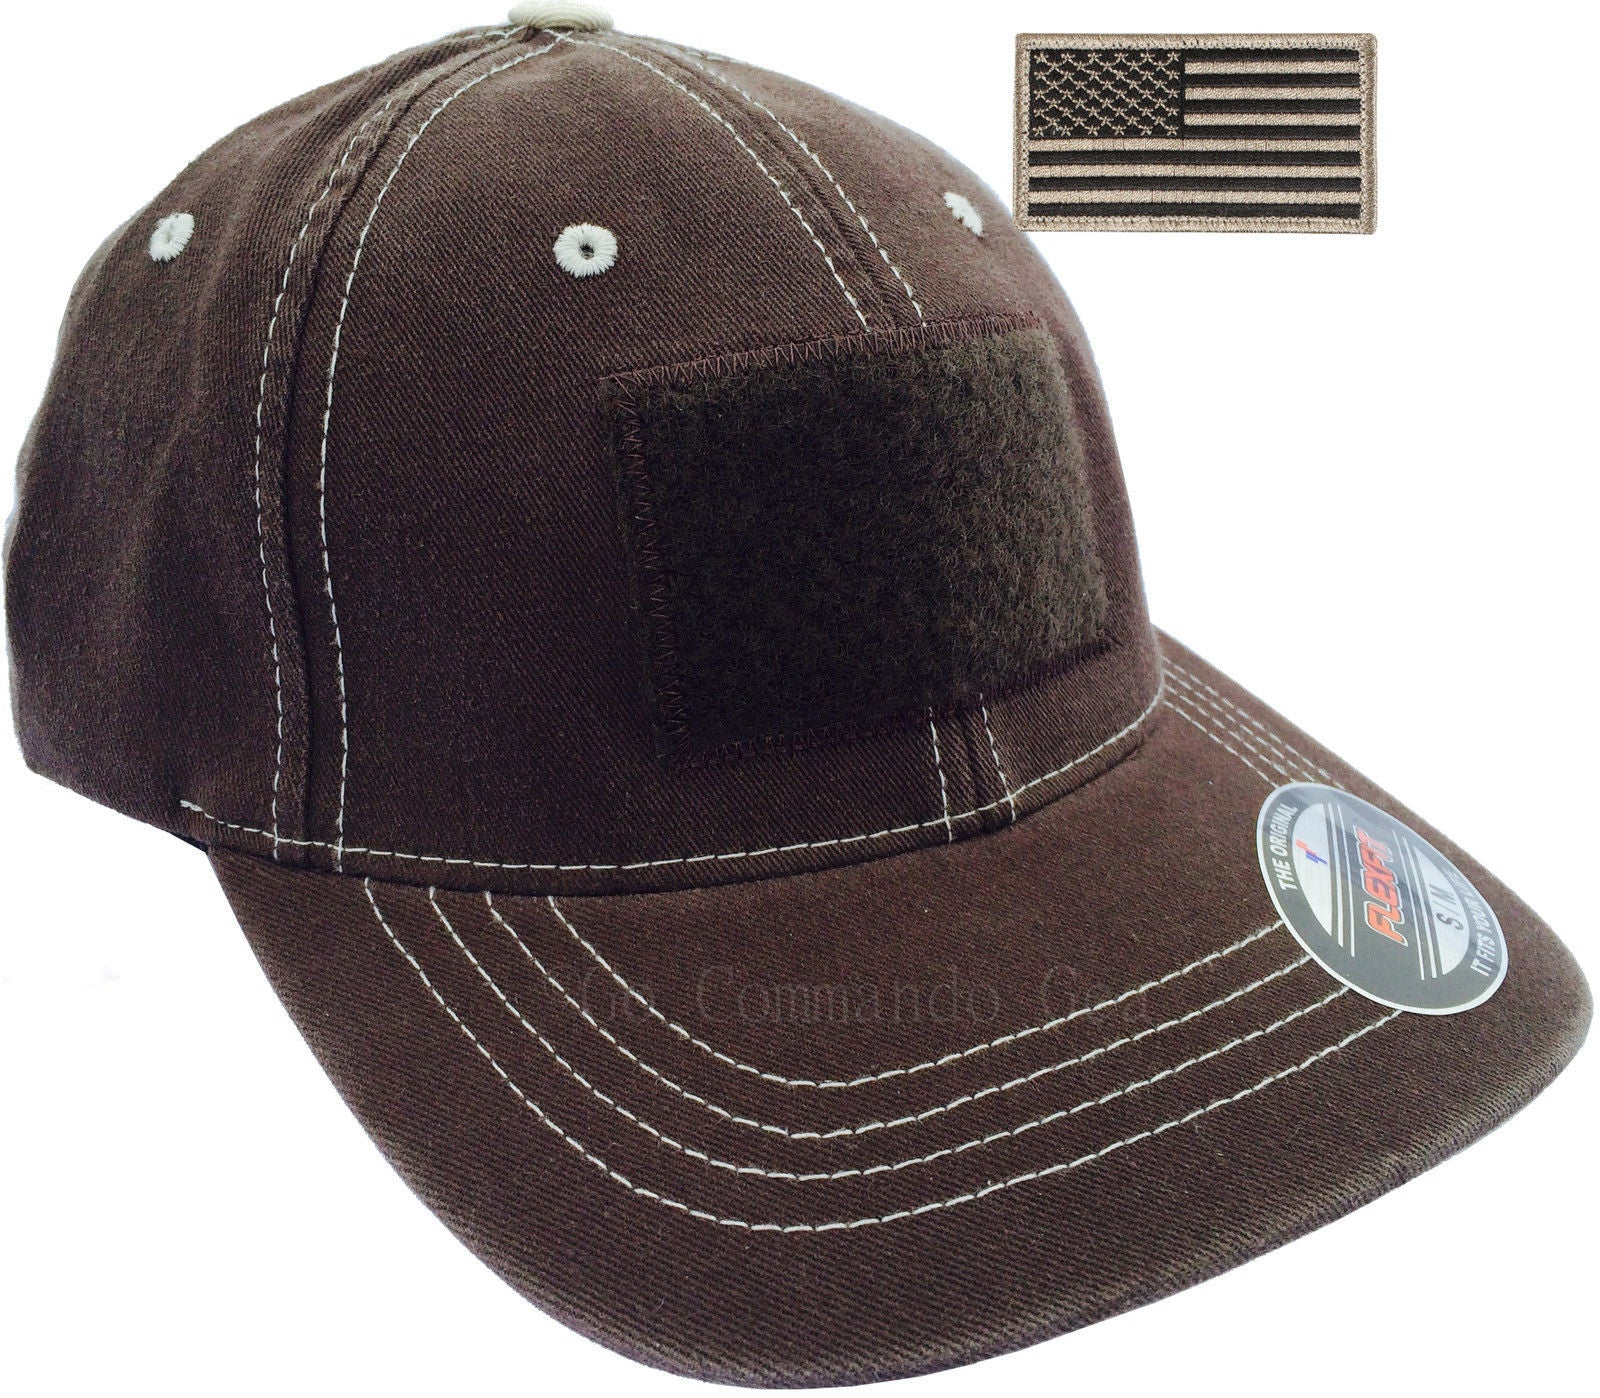 Men s Flexfit Contrast Stitch Tactical Cap - Fitted Velcro Area Hat with  Patch Black Brown ... 3c2f020f482